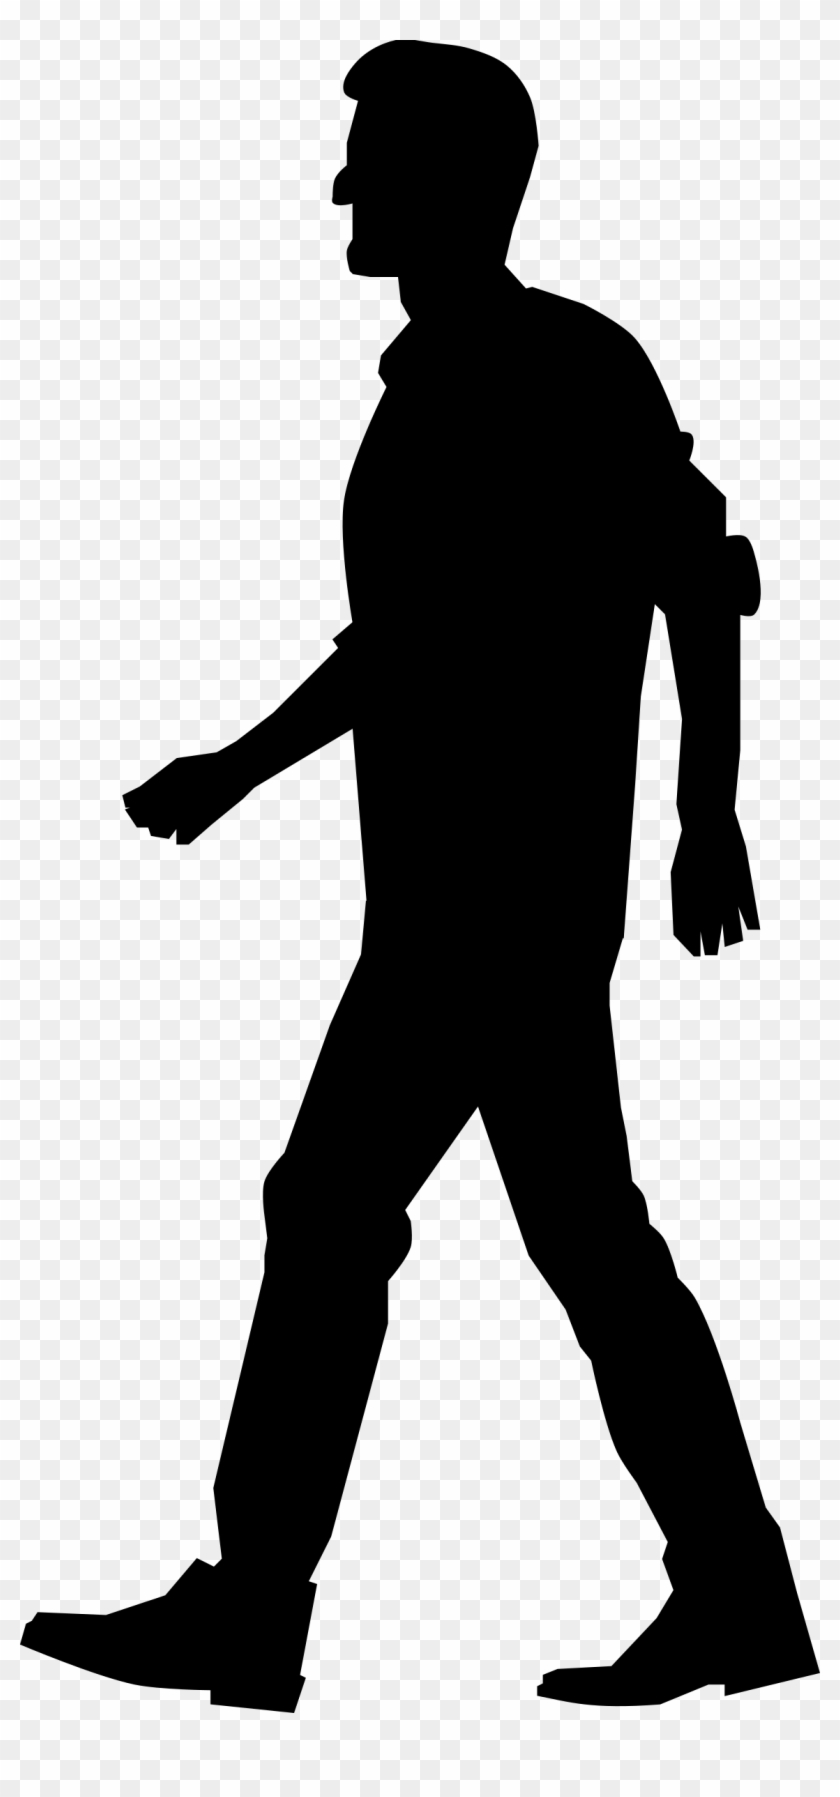 Clipart Human Silhouette Walking Png Free Transparent Png Clipart Images Download Find the perfect human silhouette stock illustrations from getty images. clipart human silhouette walking png